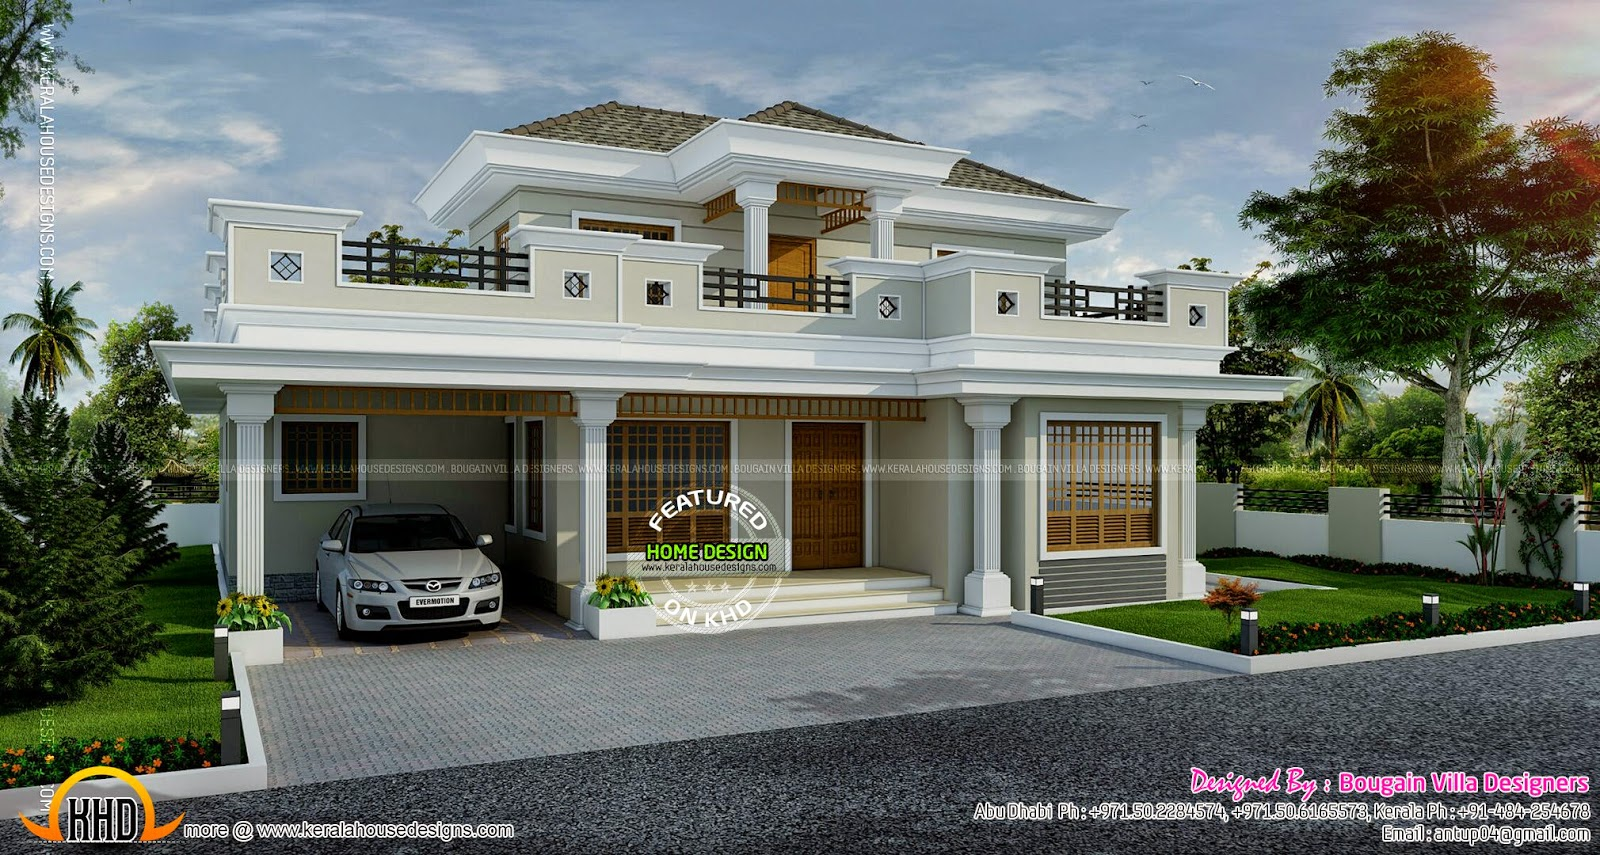 house plans in kerala style with photos with 2014 12 01 Archive on 10287 furthermore Designs Houses Outlook also Nautilus Houseboats likewise Plan And Elevation likewise Simple Elevation House Plan In Below.